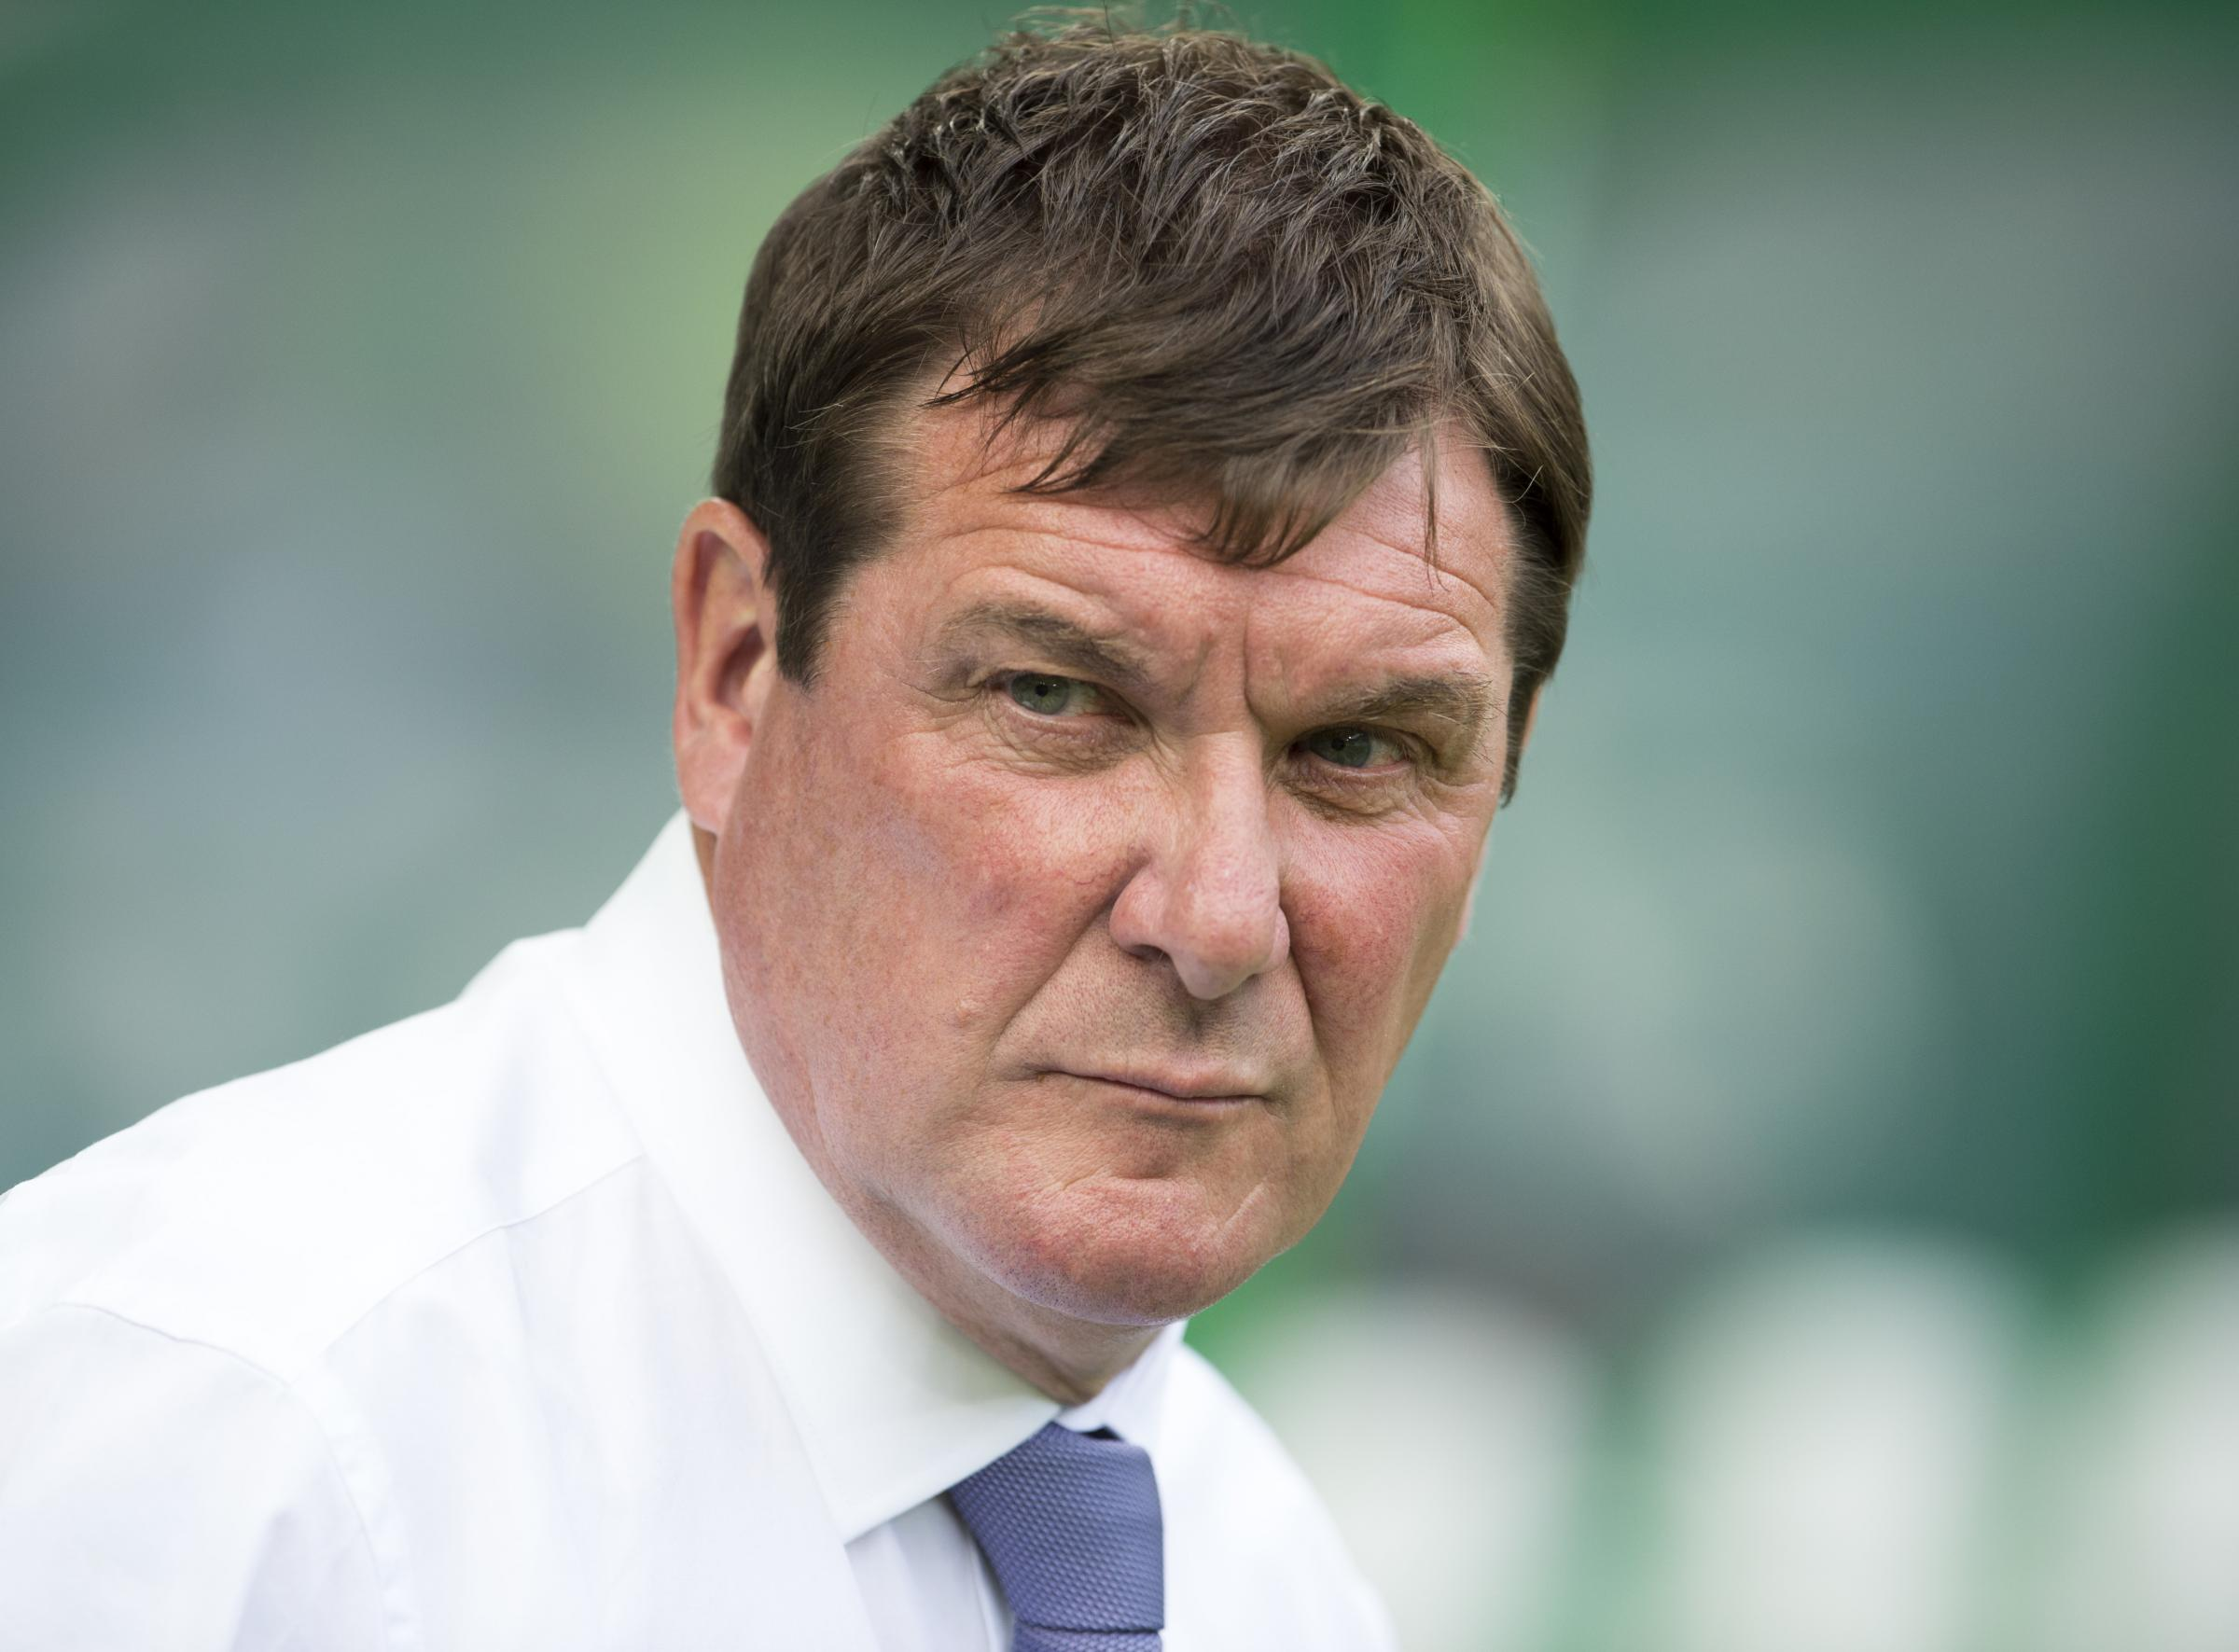 St Johnstone caretaker Alec Cleland admits he was'shocked' when Tommy Wright announcedhe was leaving